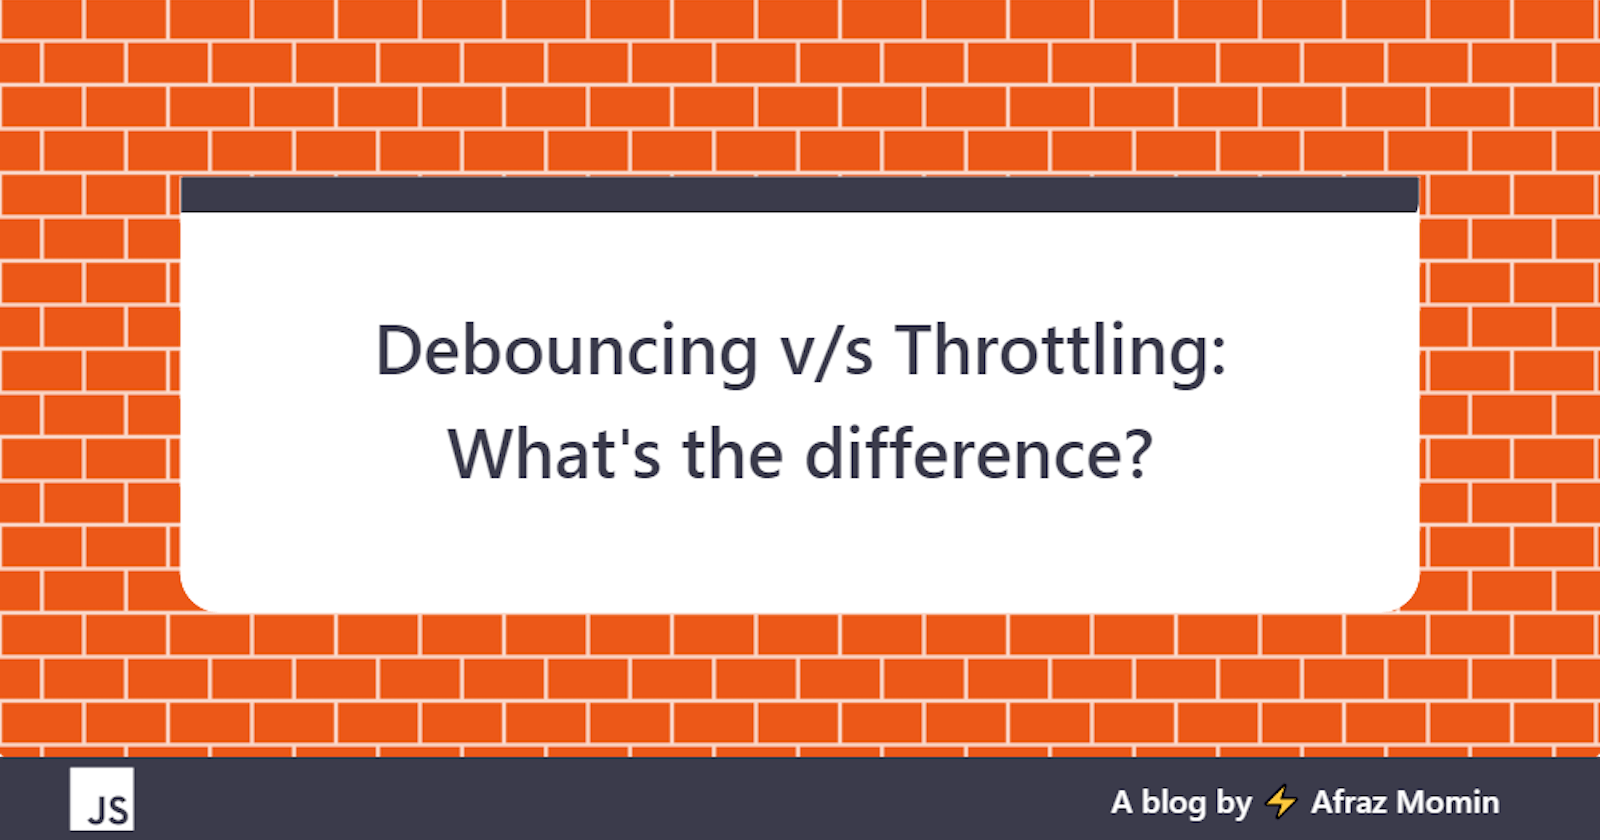 Debouncing v/s Throttling: What's the difference?